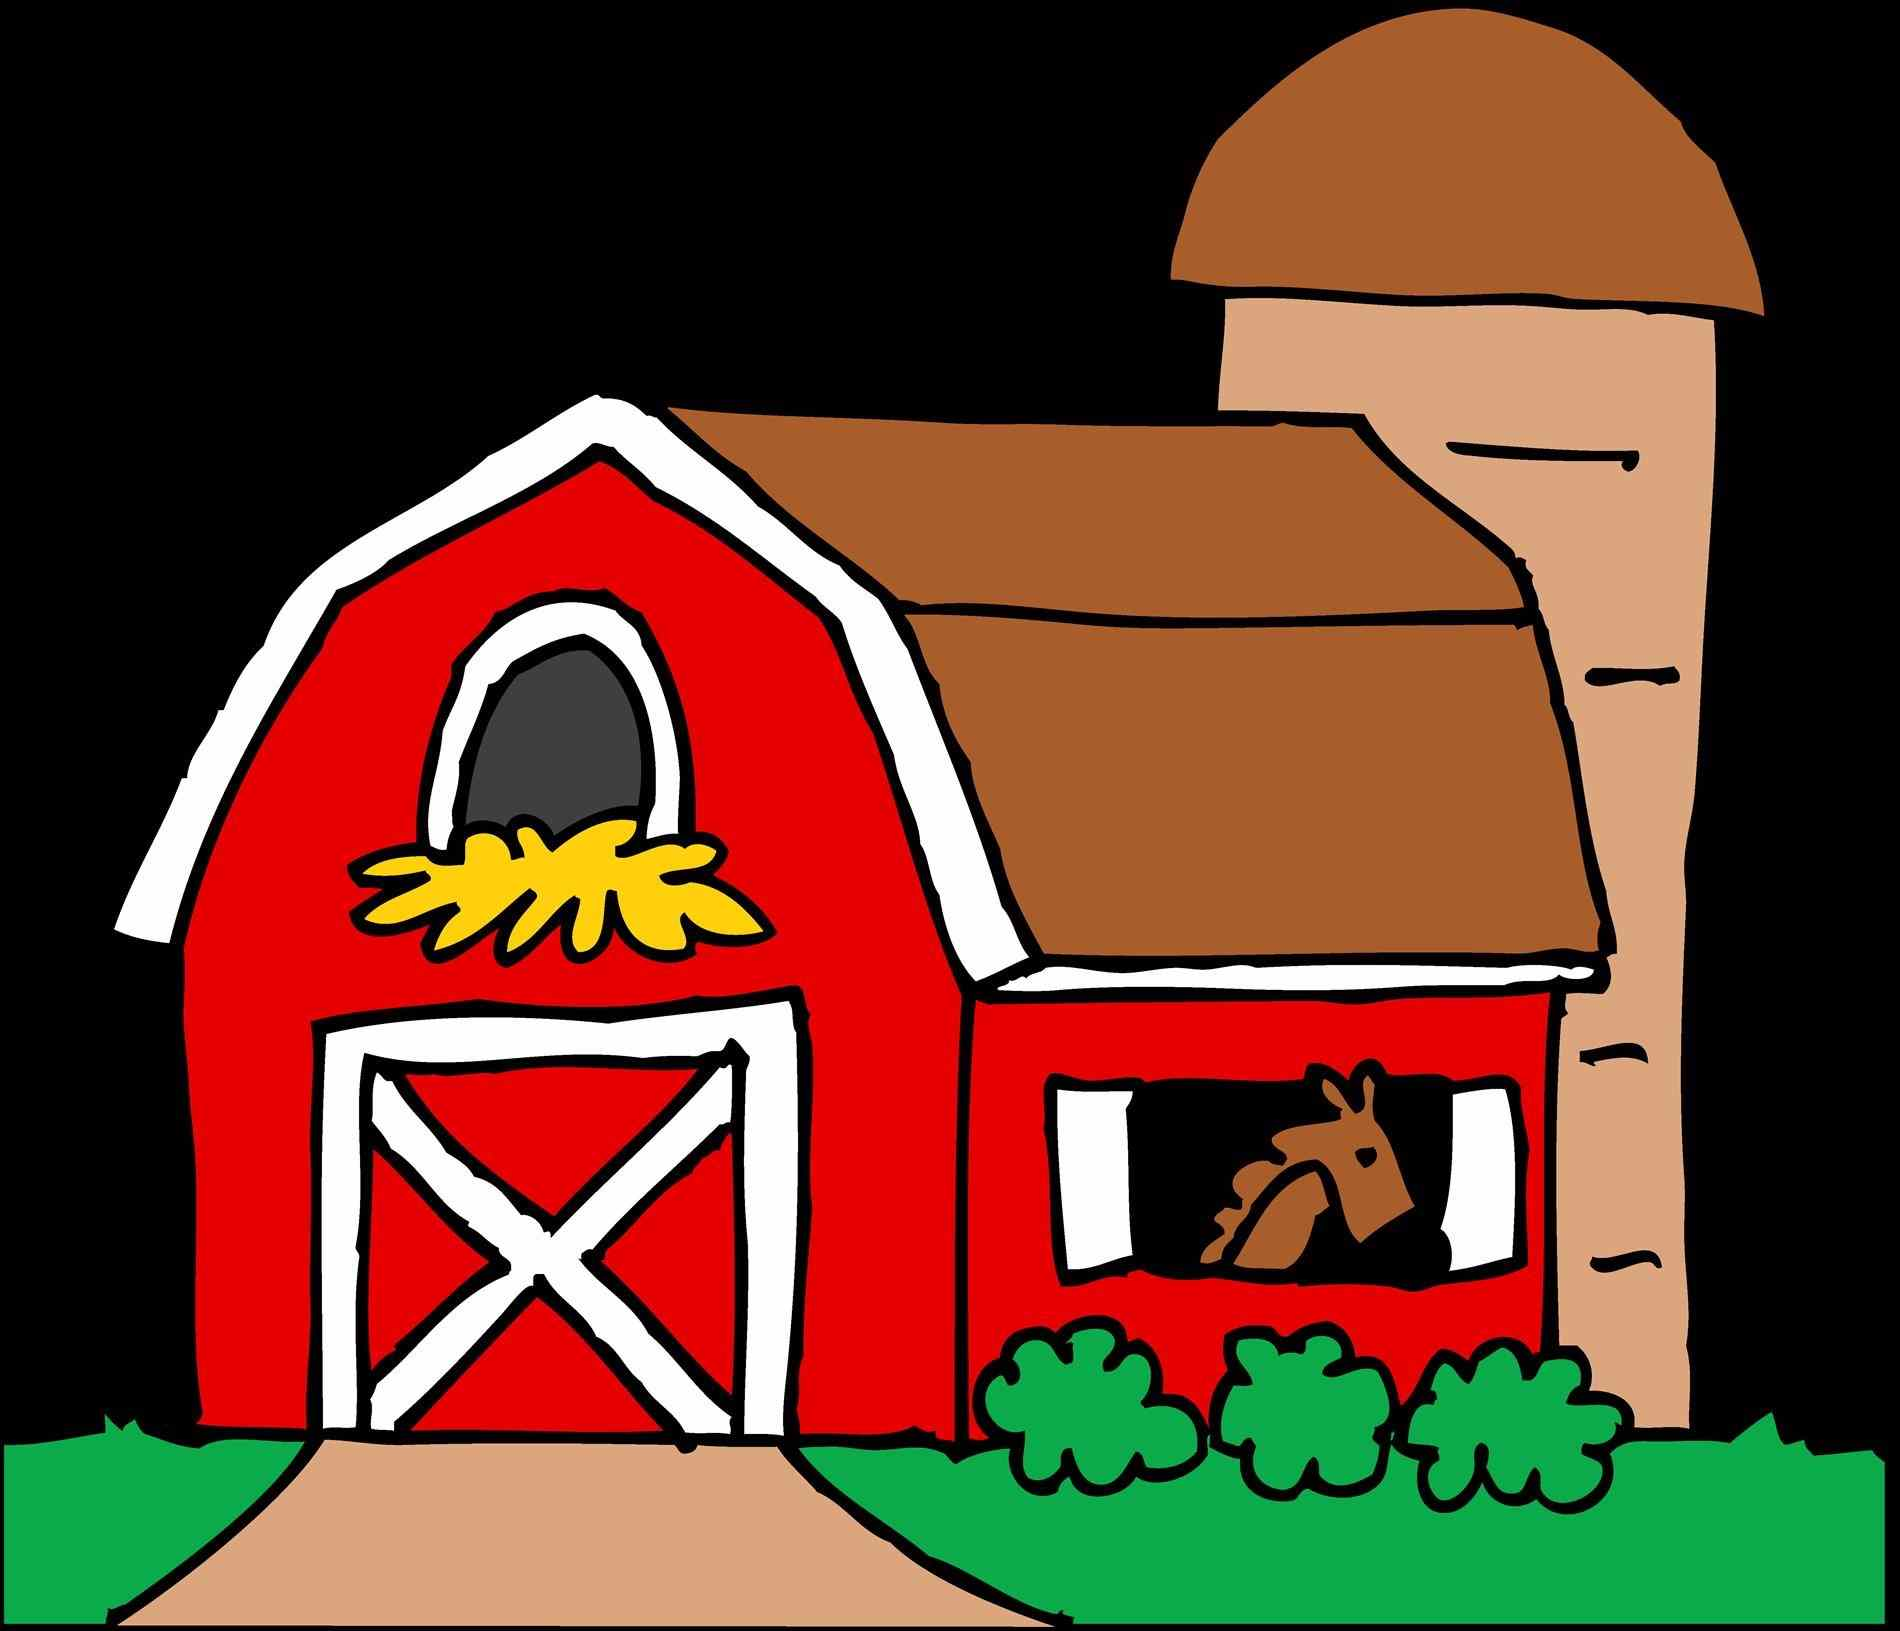 Barn clipart cute. Free download best on